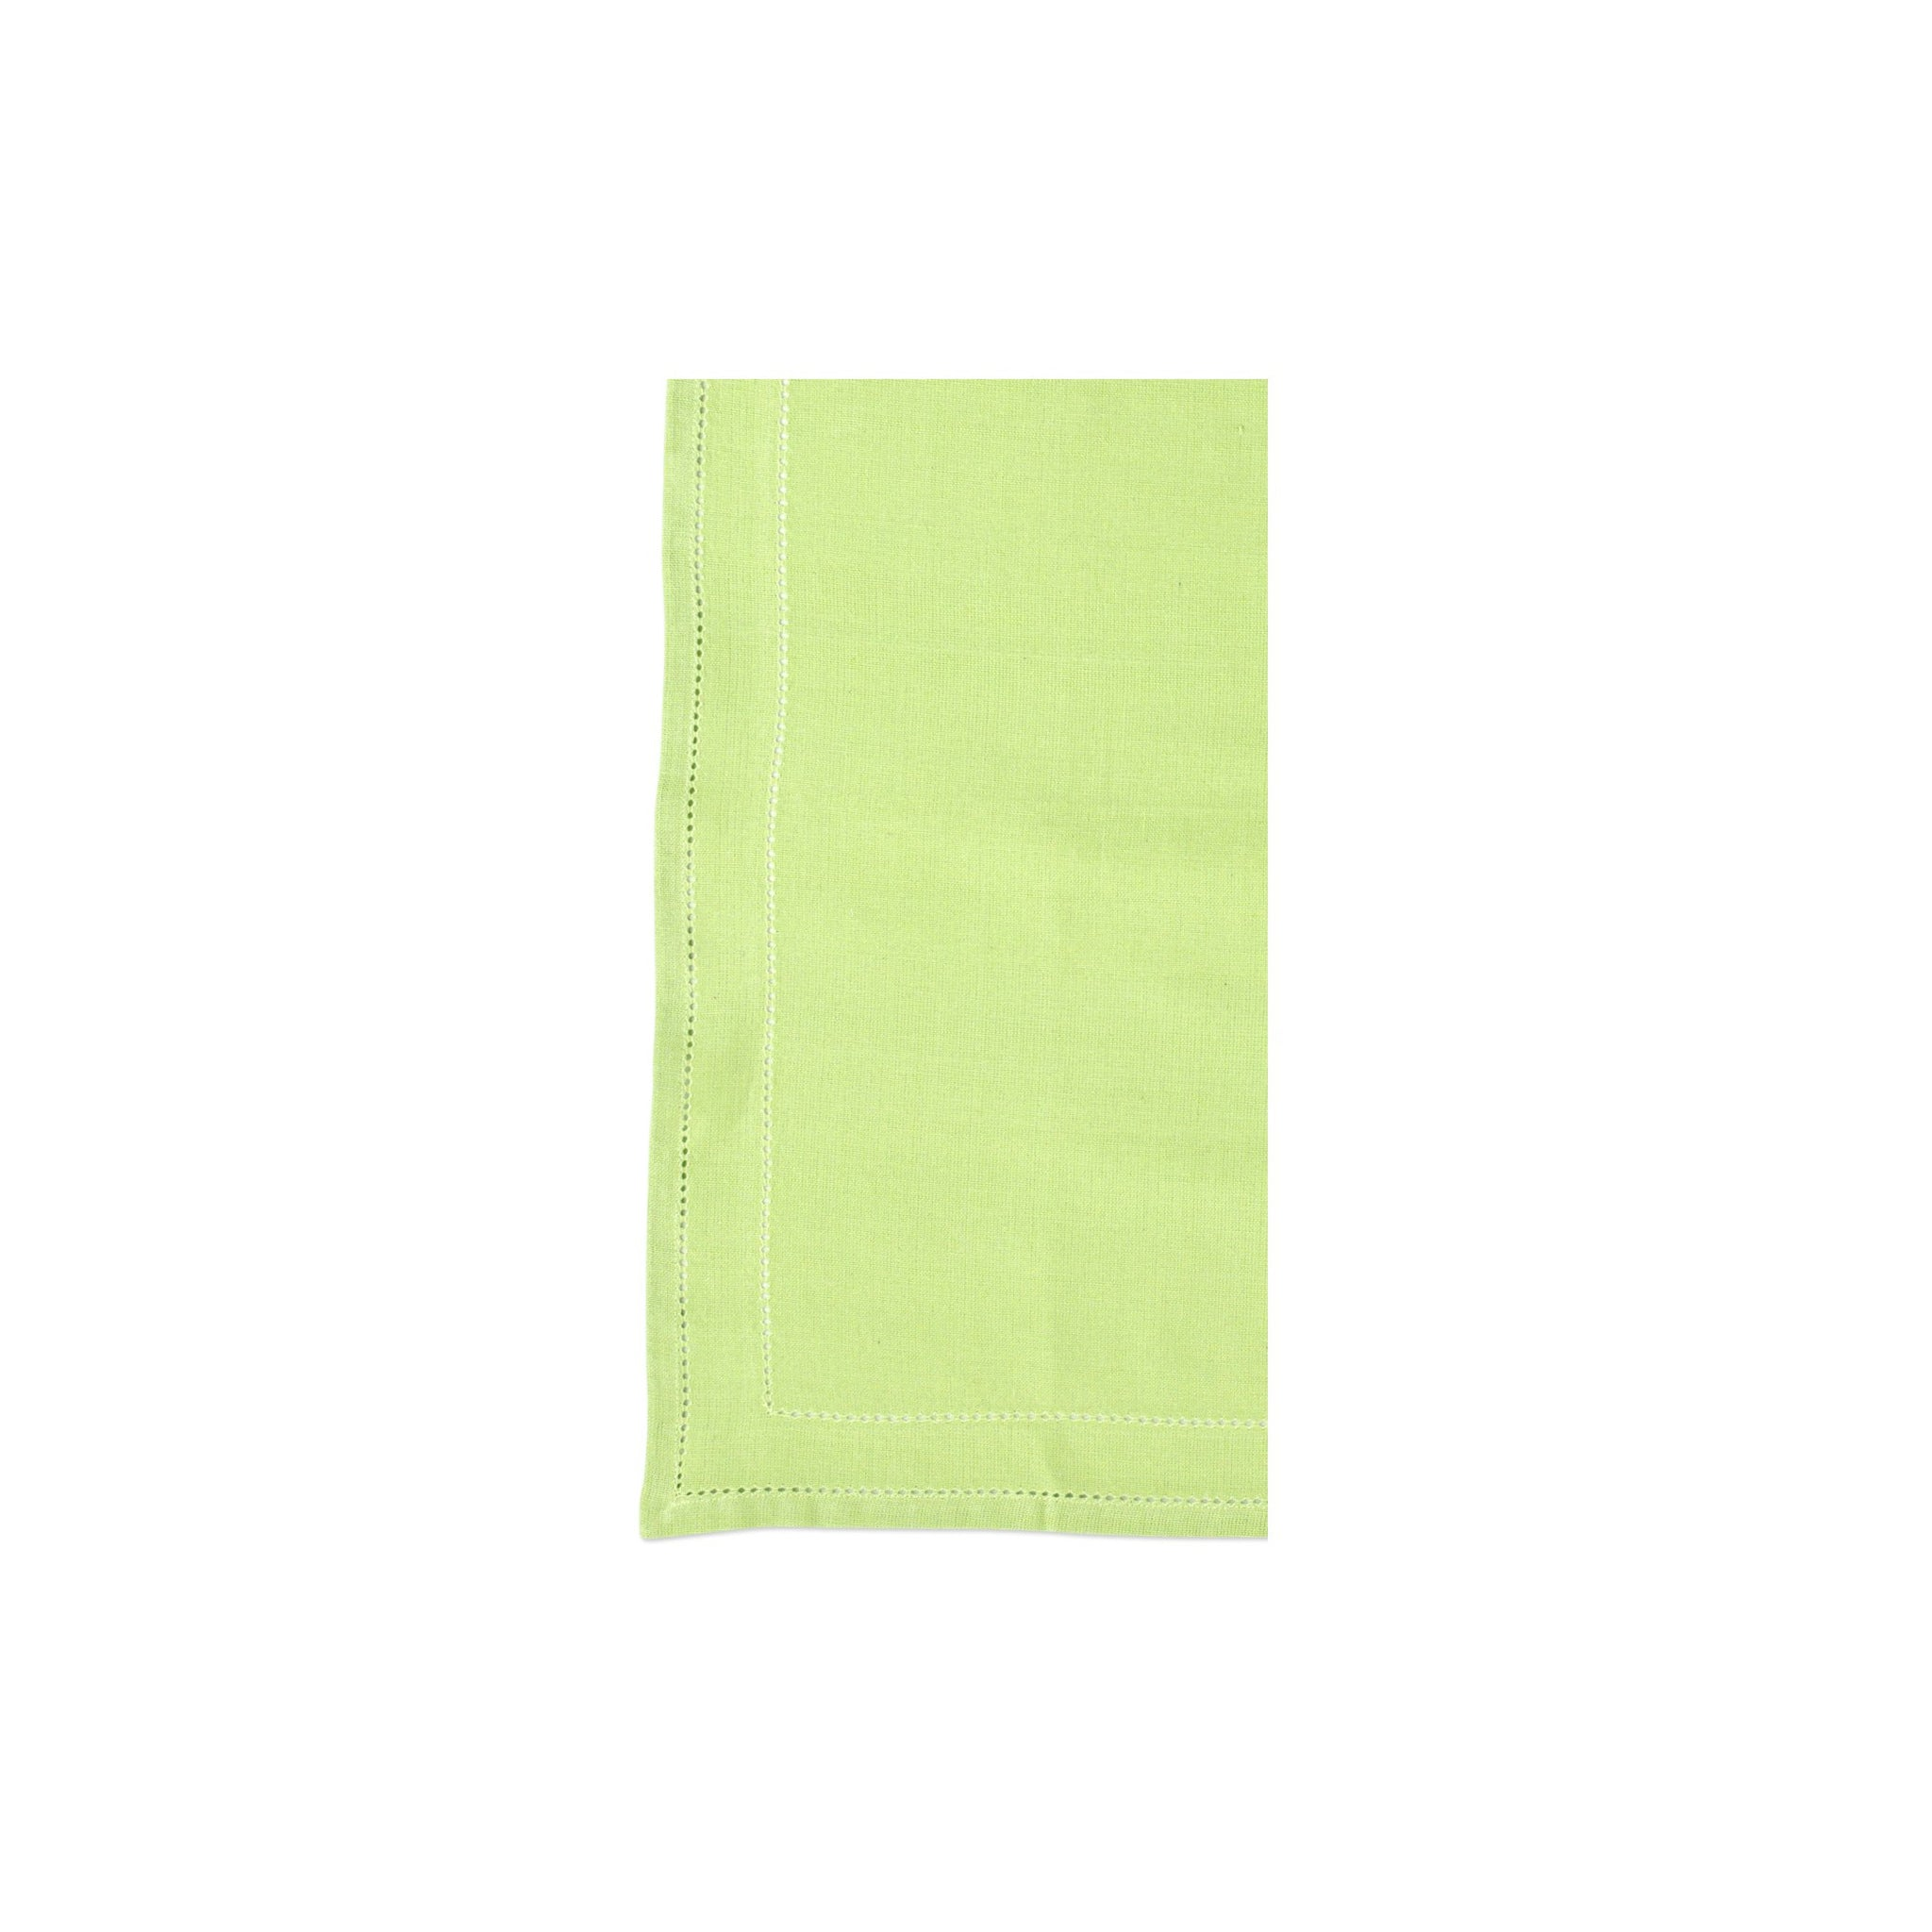 Cotone Linens Pistachio Napkins with Double Stitching - Set of 4